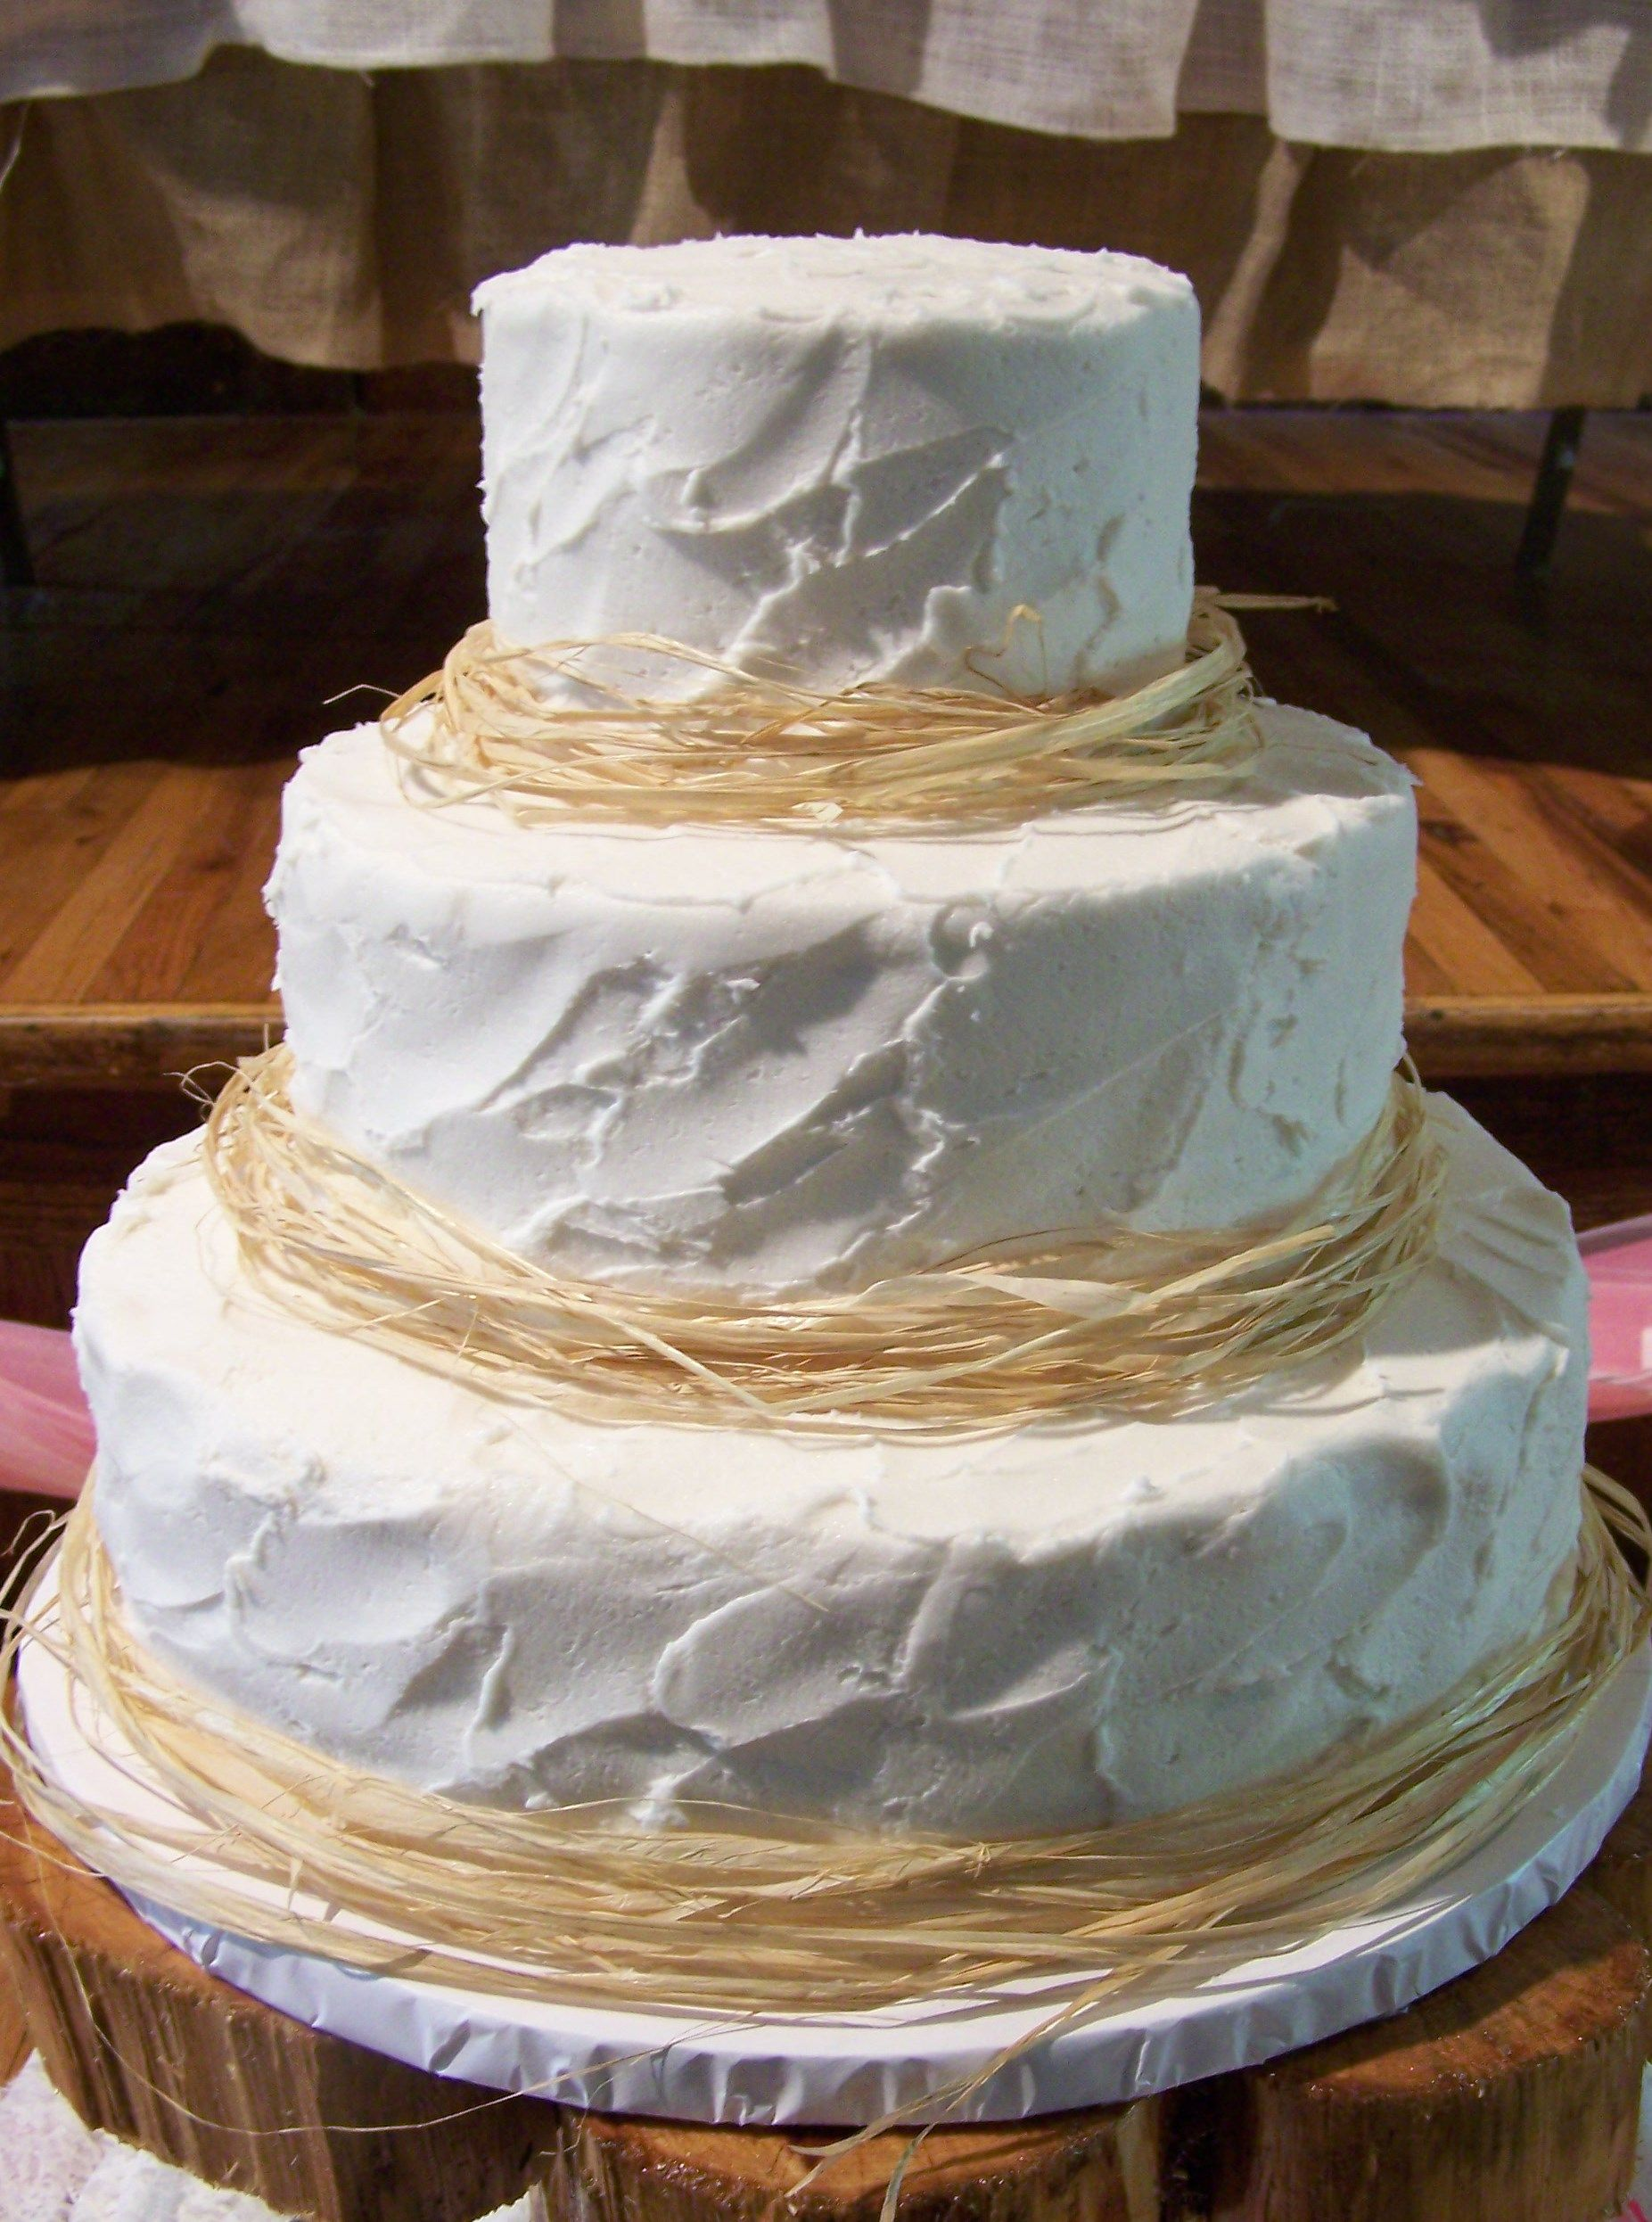 Decorating With Raffia Rustic Wedding Cake With Raffia Borders Wedding Cakes By Sherry